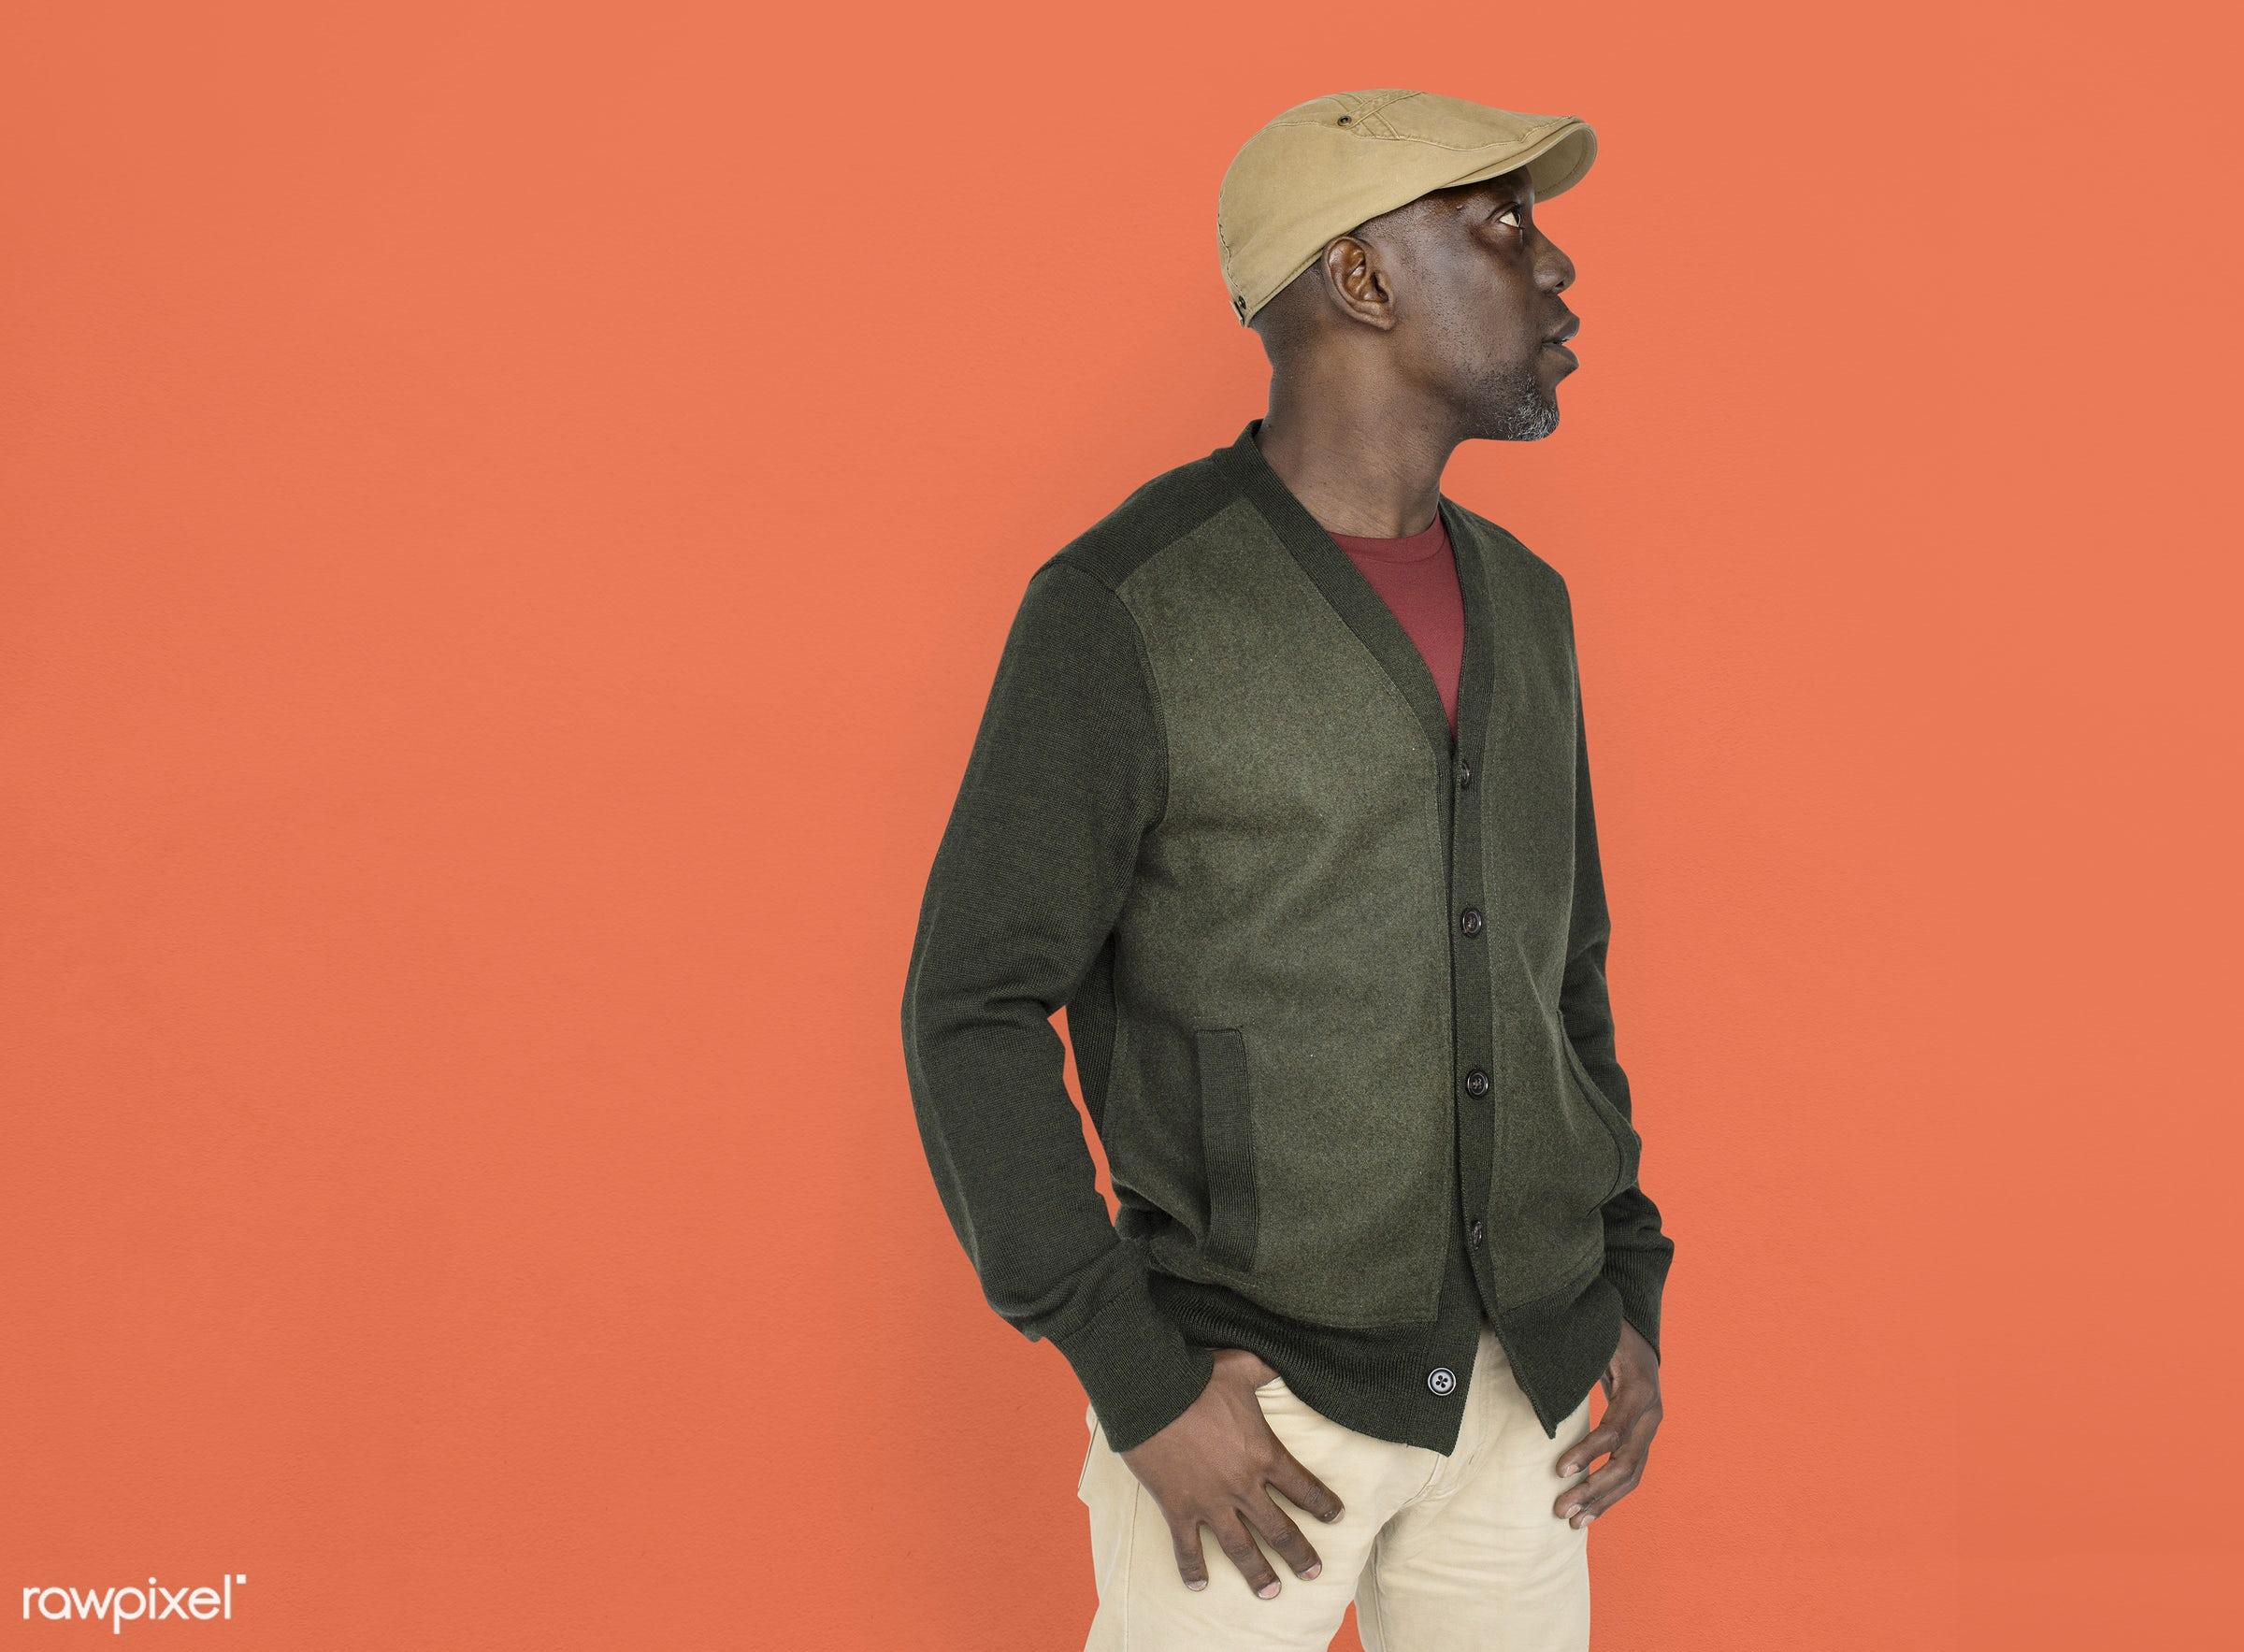 expression, person, side view, wearing hat, people, hat, pose, casual, man, black, casual dressing, cool, isolated, african...